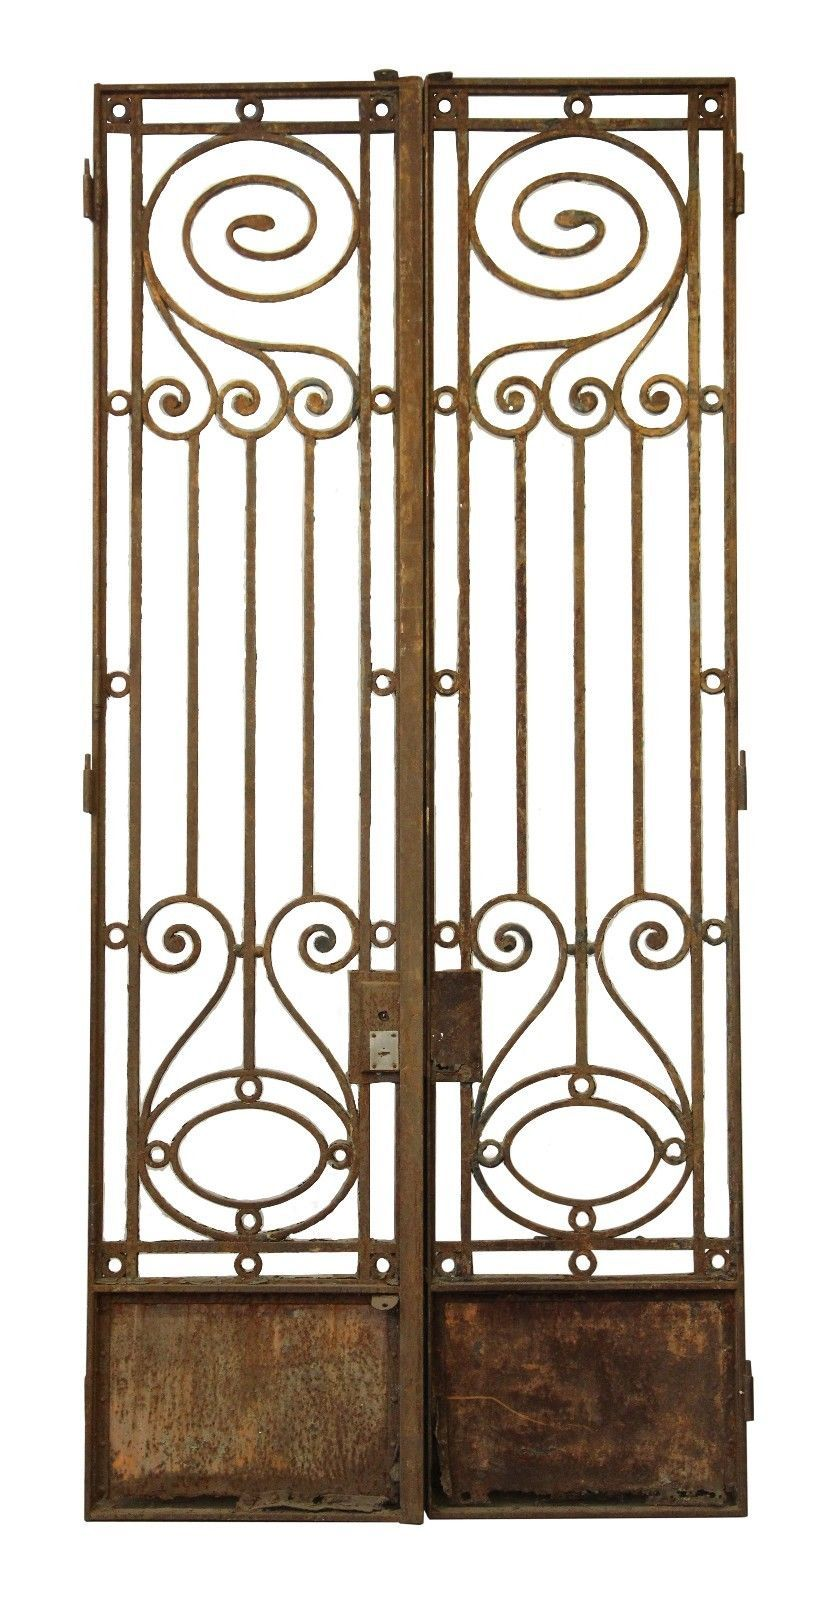 grand entrance decoration.htm 19th century wrought iron town house gates or doors ebay  wrought iron town house gates or doors